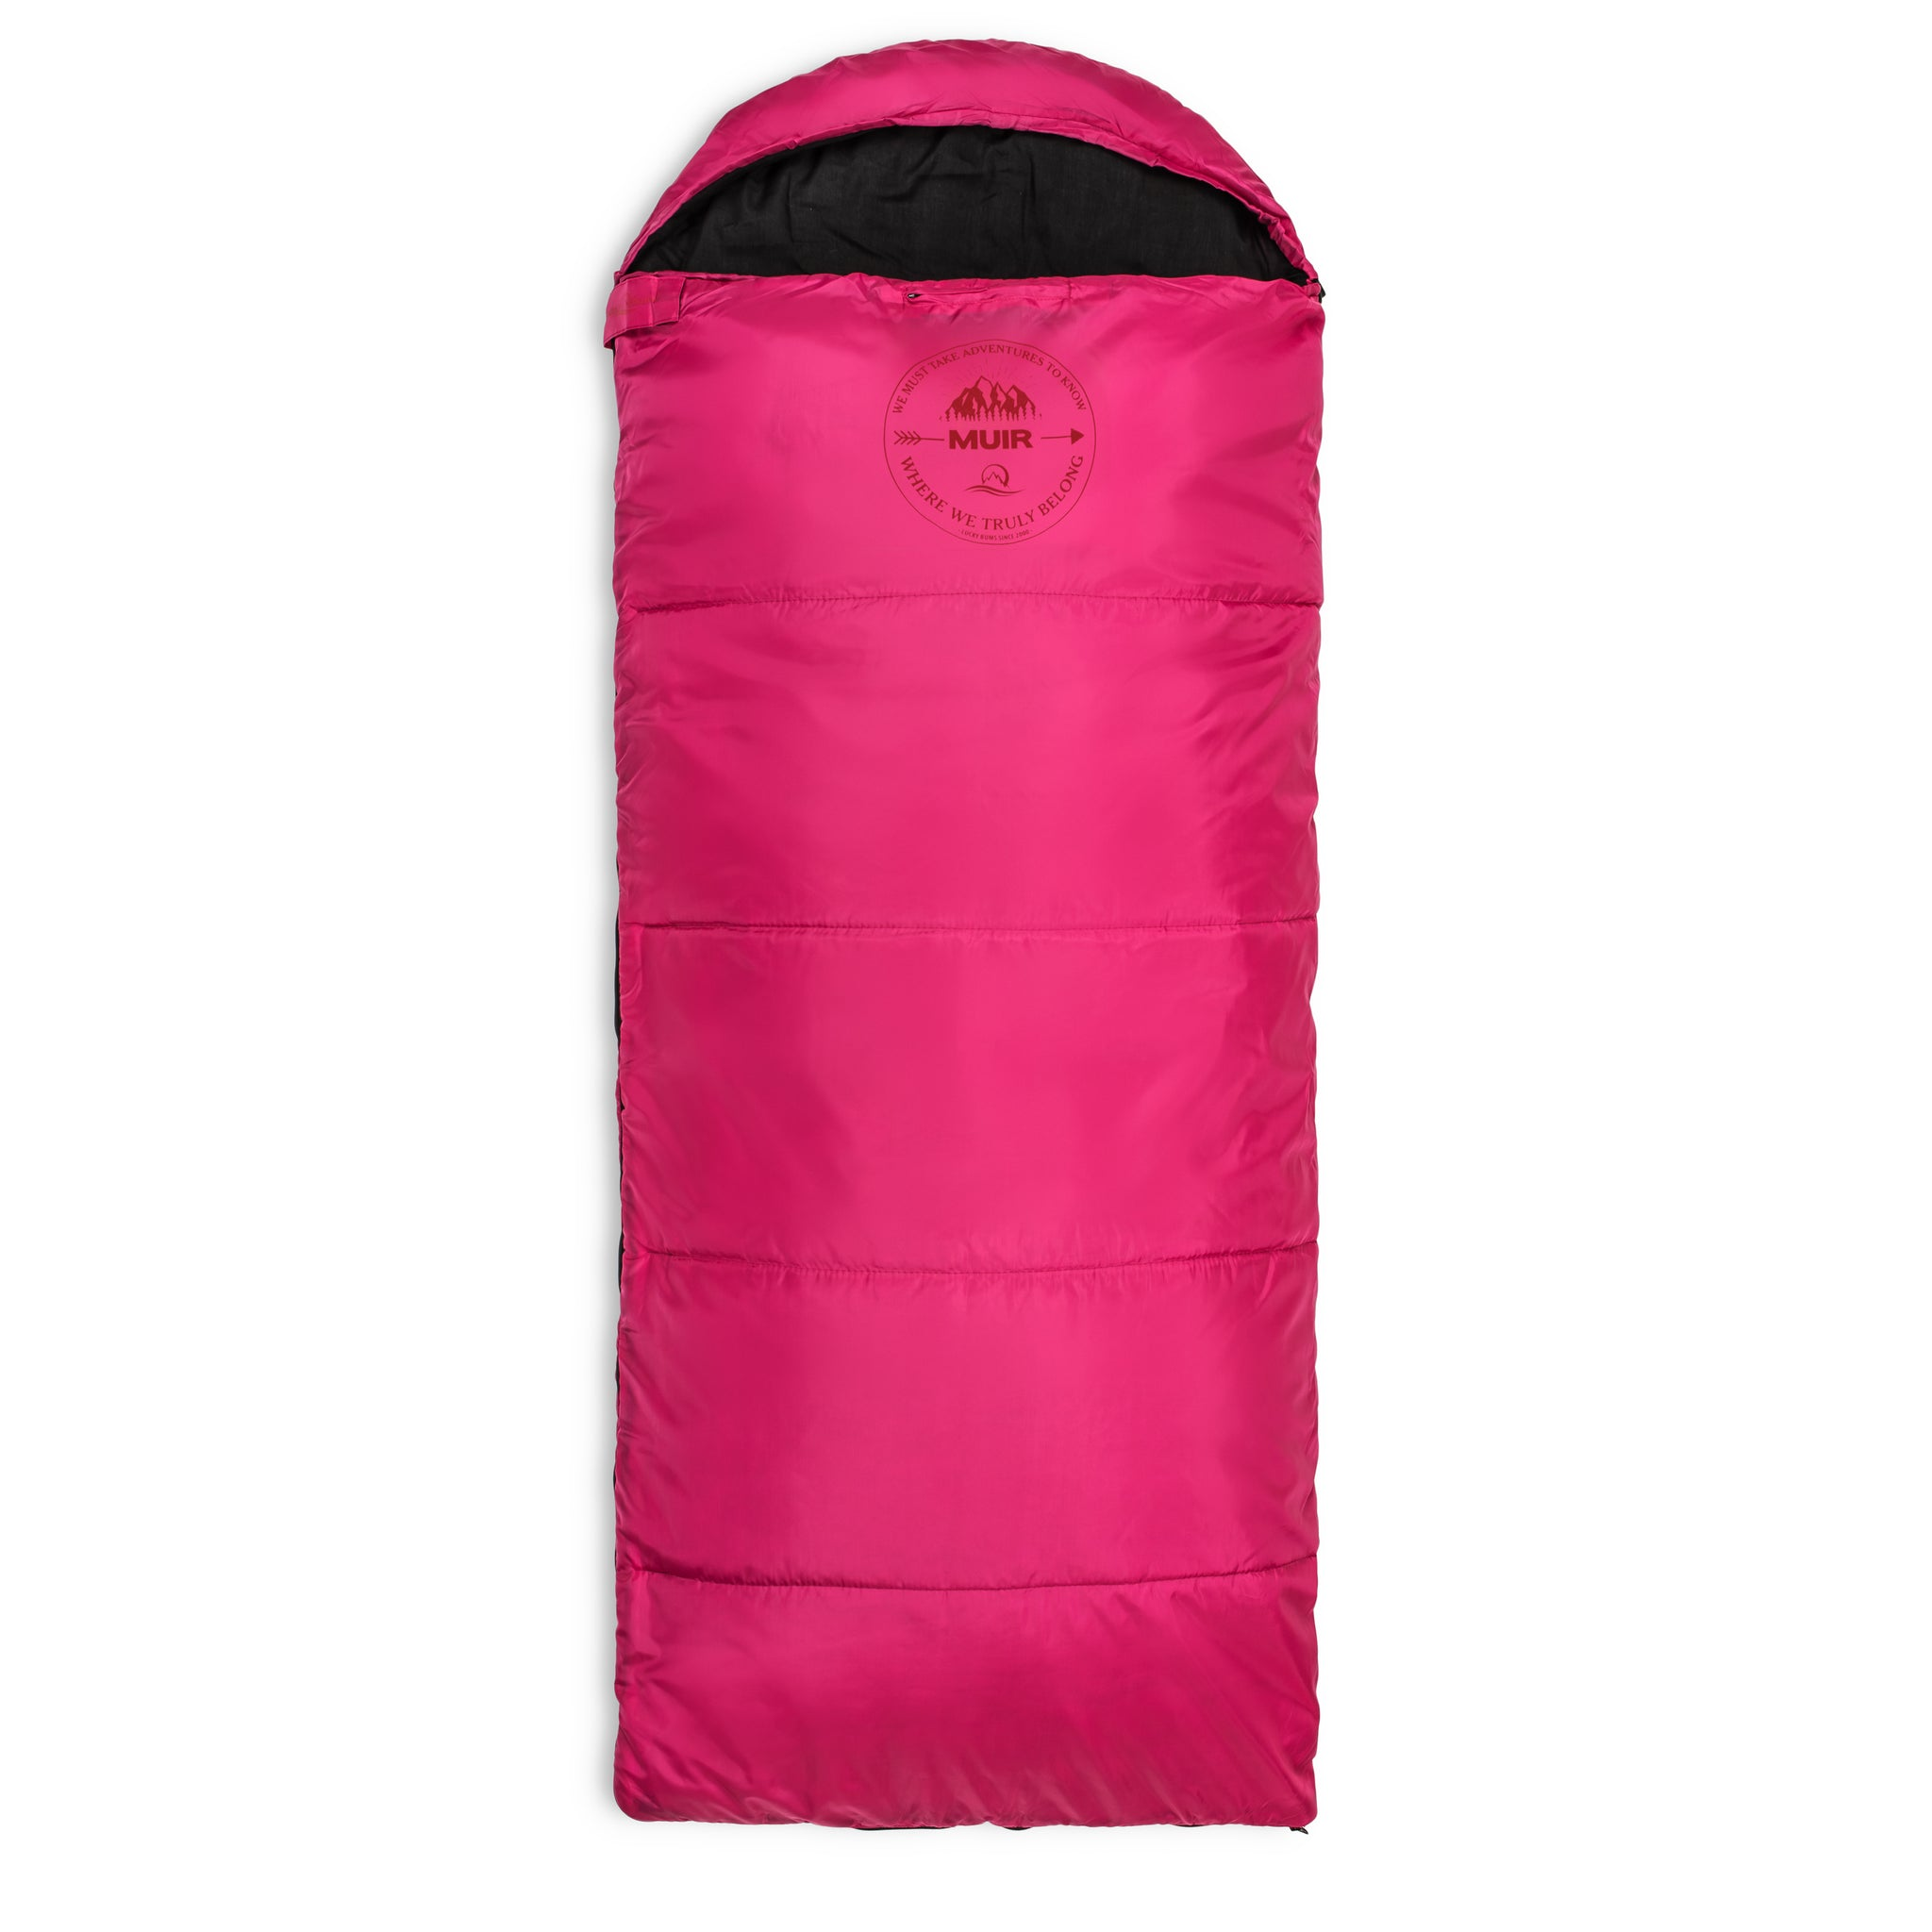 Lucky Bums Youth Muir Sleeping Bag 40F 5C With Compressing Carry